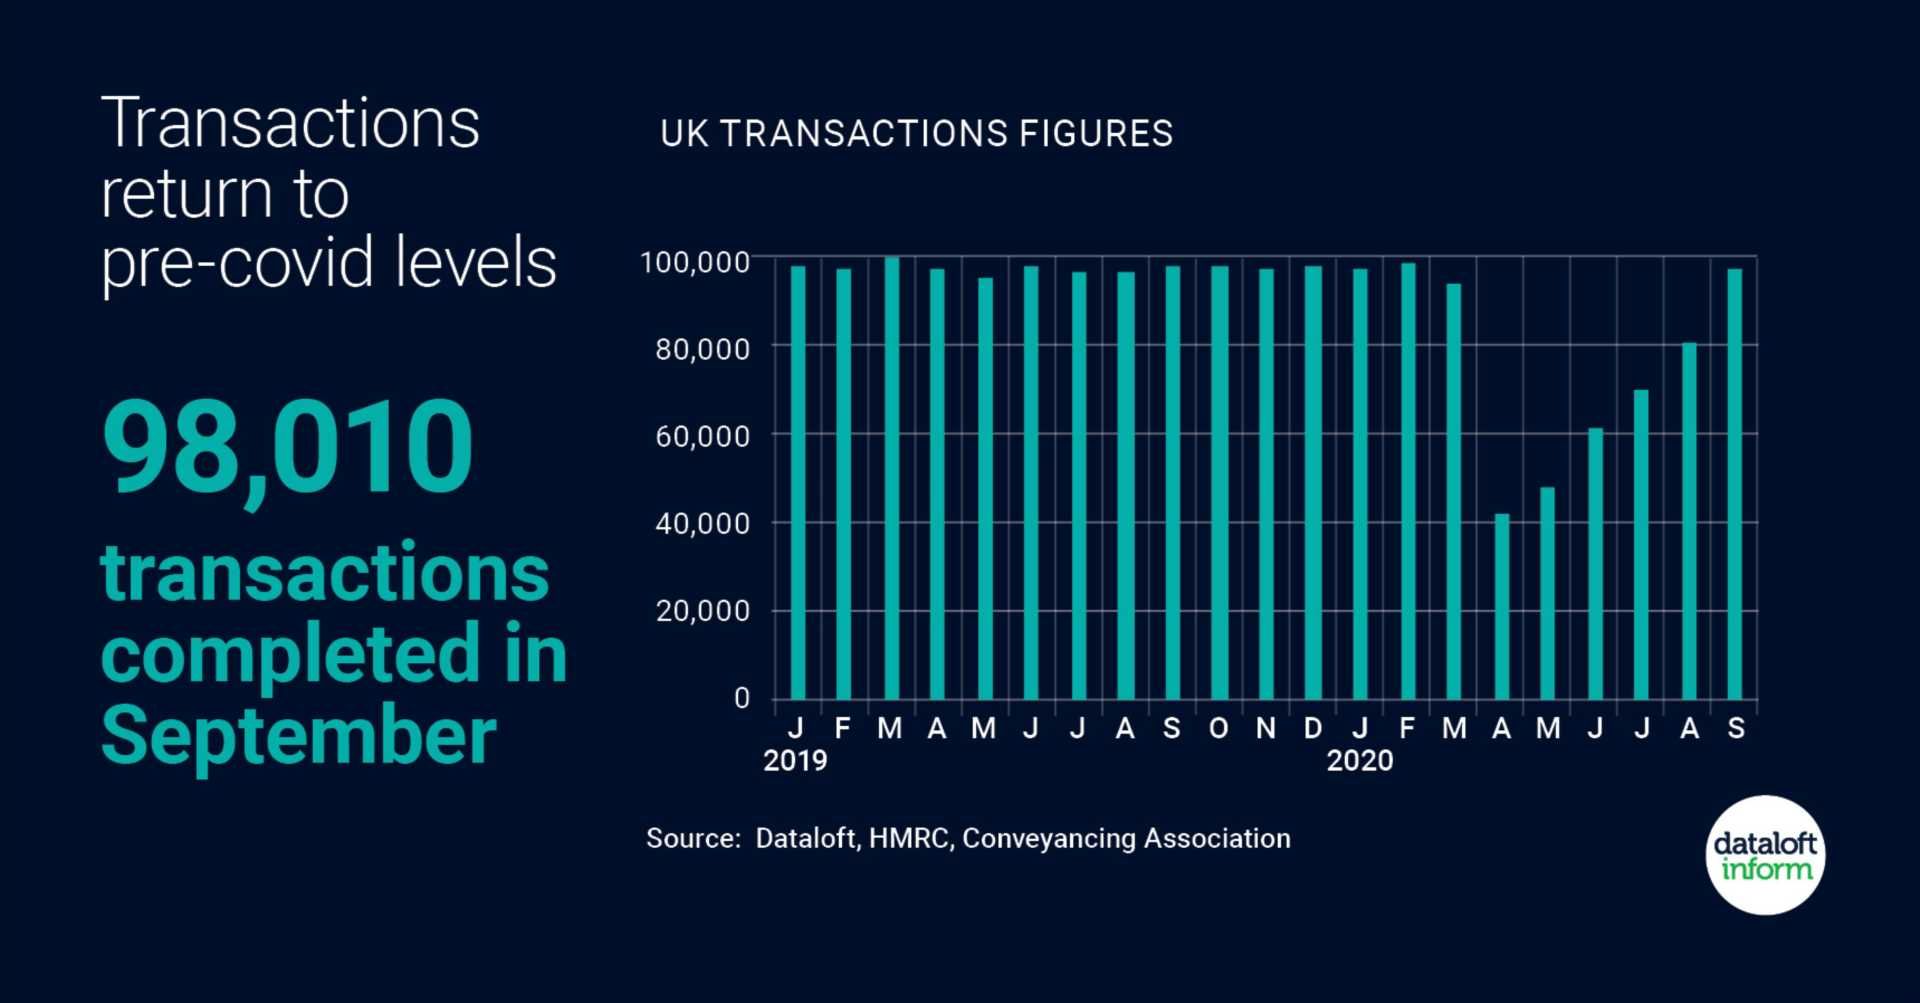 Transactions return to pre-covid levels